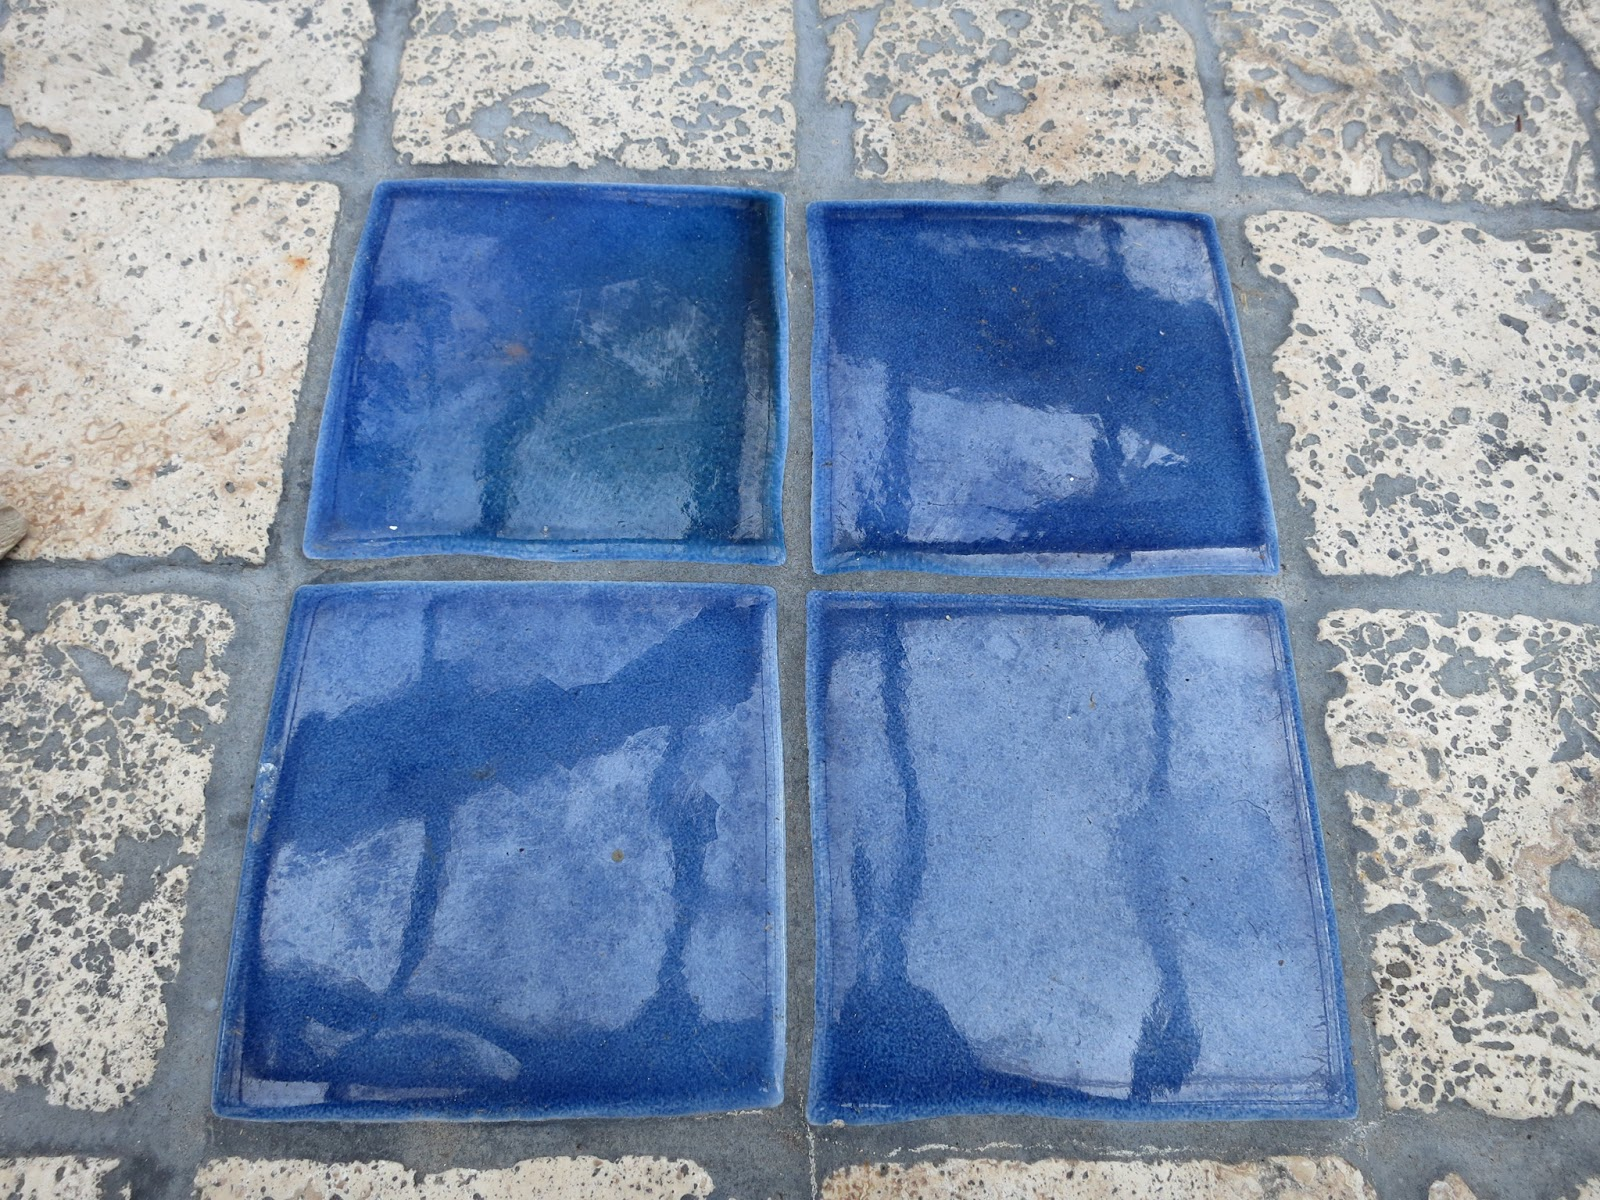 Blue squares. Grey lines. Tiled table top.